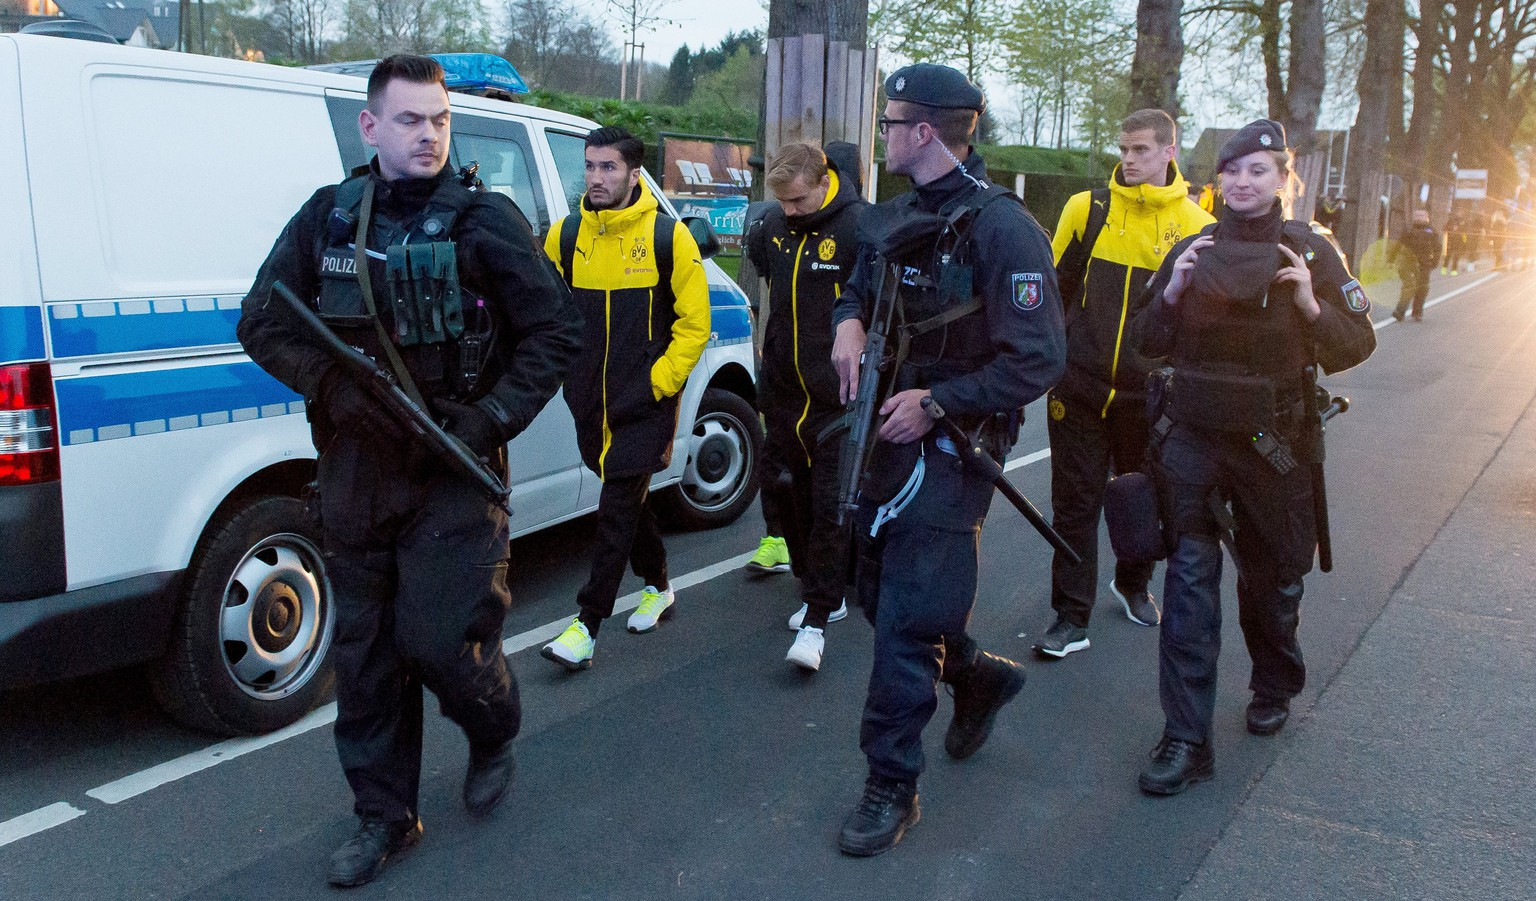 epa05903388 Borussia Dortmund players (L-R) Nuri Sahin, Marcel Schmelzer and Sven Bender are escorted by police after their team bus was hit by three explosions ahead of their UEFA Champions League soccer match against AS Monaco in Dortmund, Germany, 11 April 2017. According to reports, Borussia Dortmund's team bus was damaged by three explosions on 11 April, as it was on its way to the stadium ahead of the UEFA Champions League soccer match between Borussia Dortmund and AS Monaco. Borussia Dortmund's player Marc Bartra was injured and is hospitalized. The match has been postponed.  EPA/STR